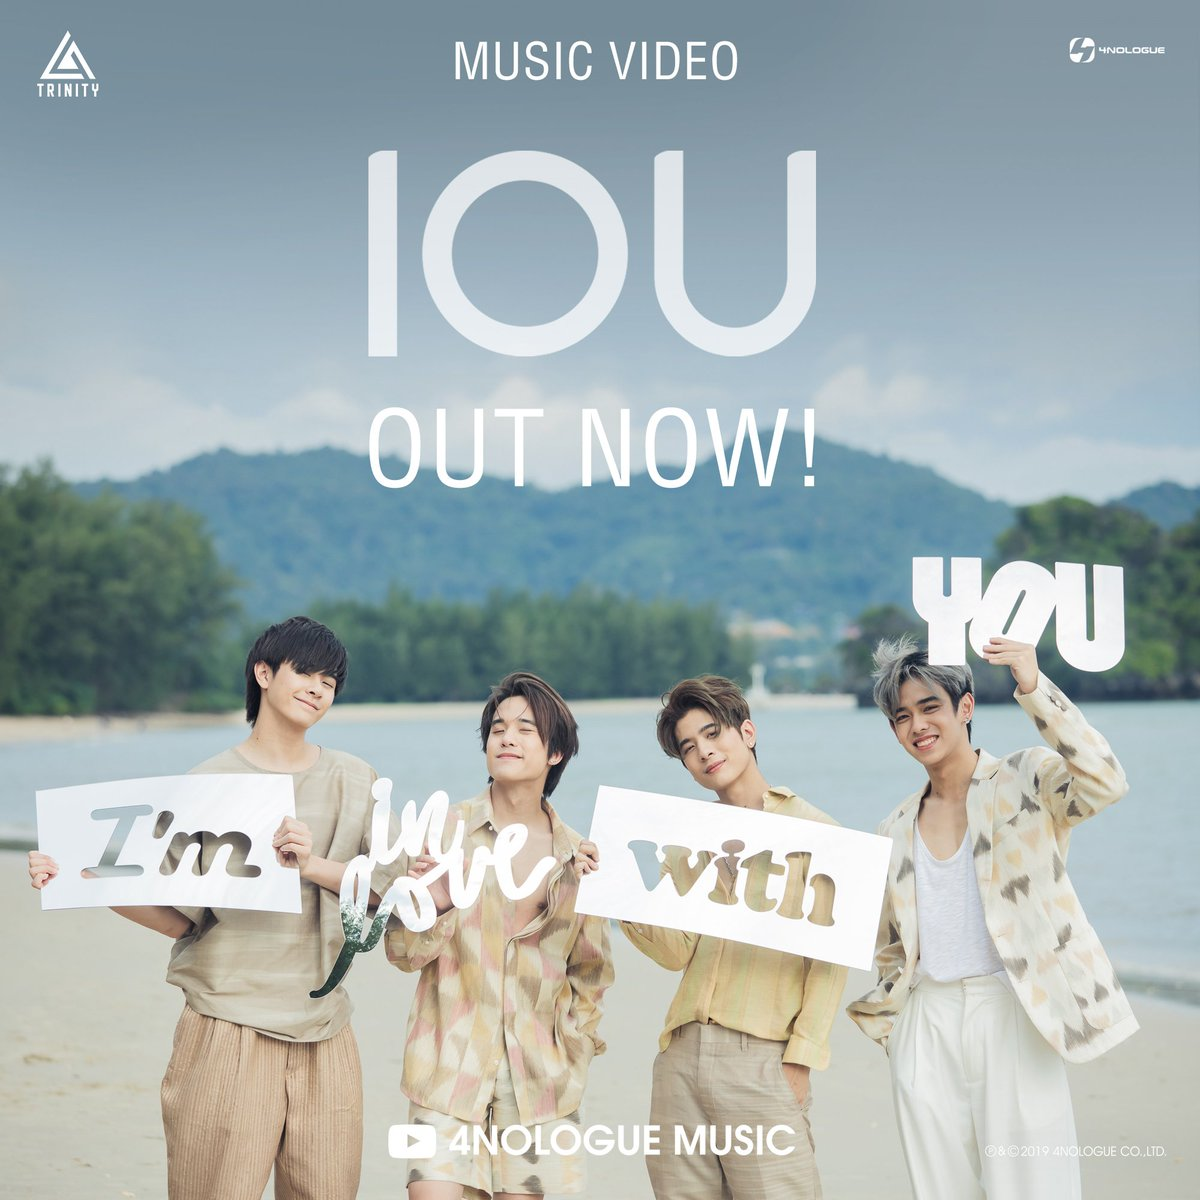 CAUSE I'M IN LOVE WITH YOU :) IOU MUSIC VIDEO IS OUT! WATCH NOW! ON YOUTUBE : 4NOLOGUE MUSIC  LINK >>   http:// bit.ly/TRINITYIOU      #TRINITY_IOUMV #TRINITY_TNT #4NOLOGUEMUSIC #4NOLOGUE<br>http://pic.twitter.com/2ngfce16VS